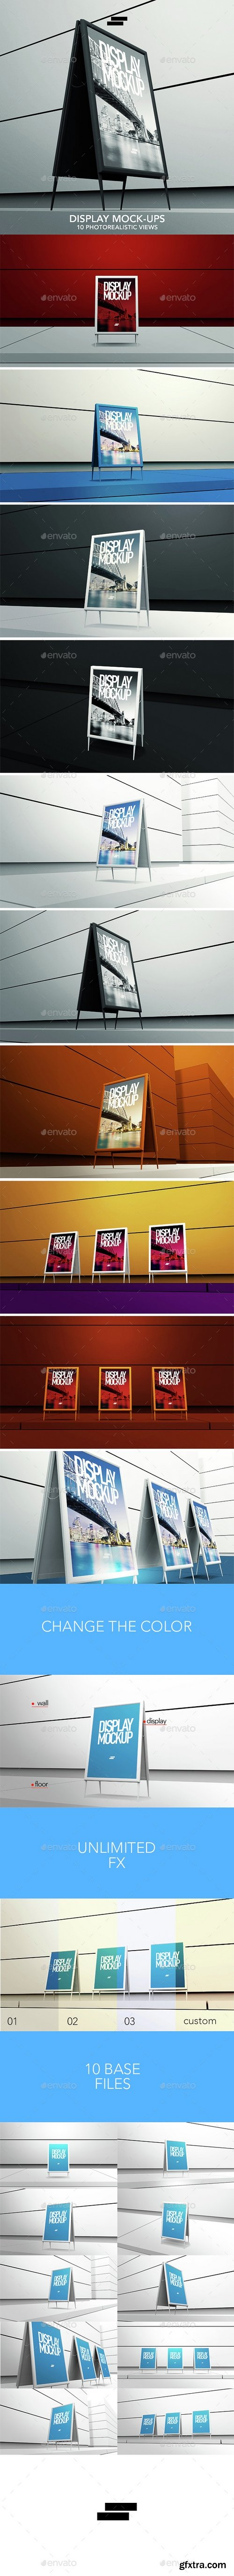 Graphicriver - 3D Display / Banner Outdoor Mock-ups 15128167